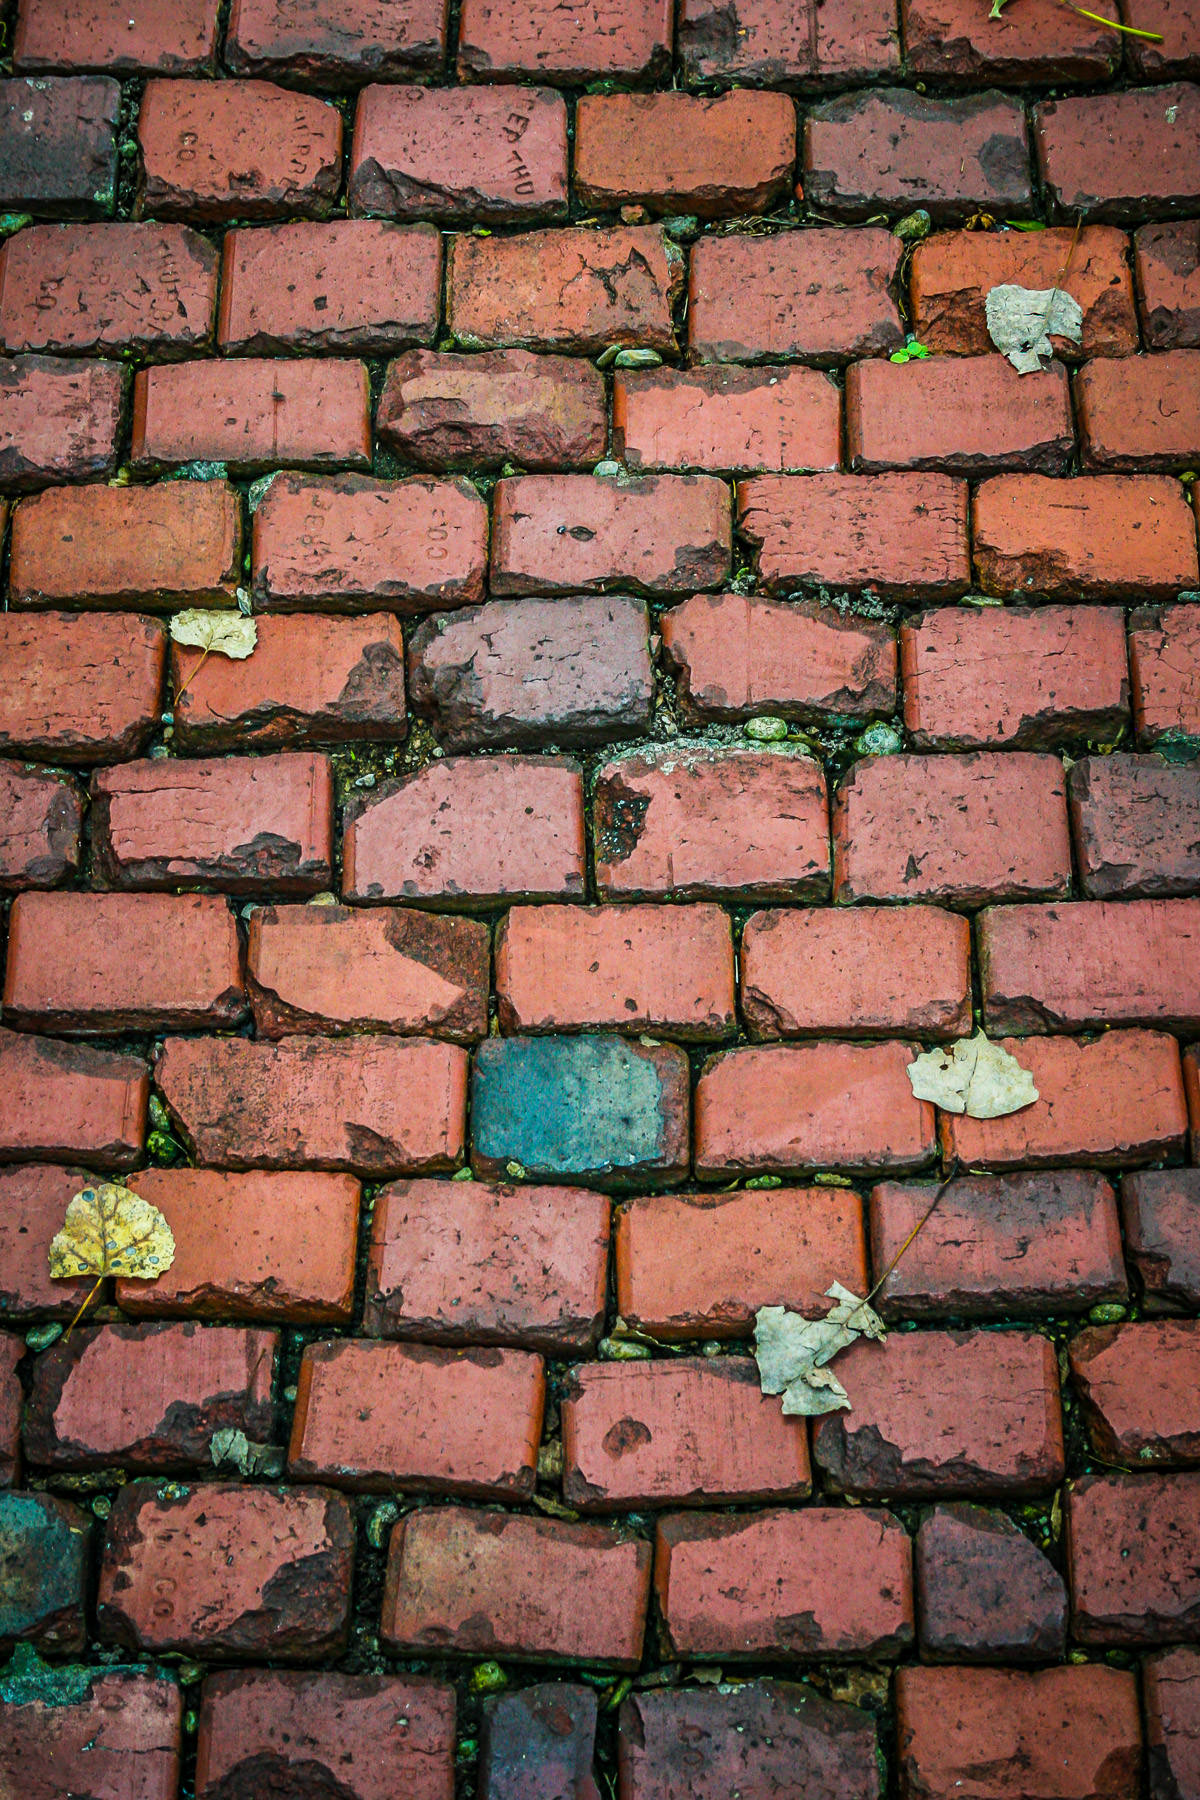 A brick sidewalk found in Fort Worth's Botanic Garden.